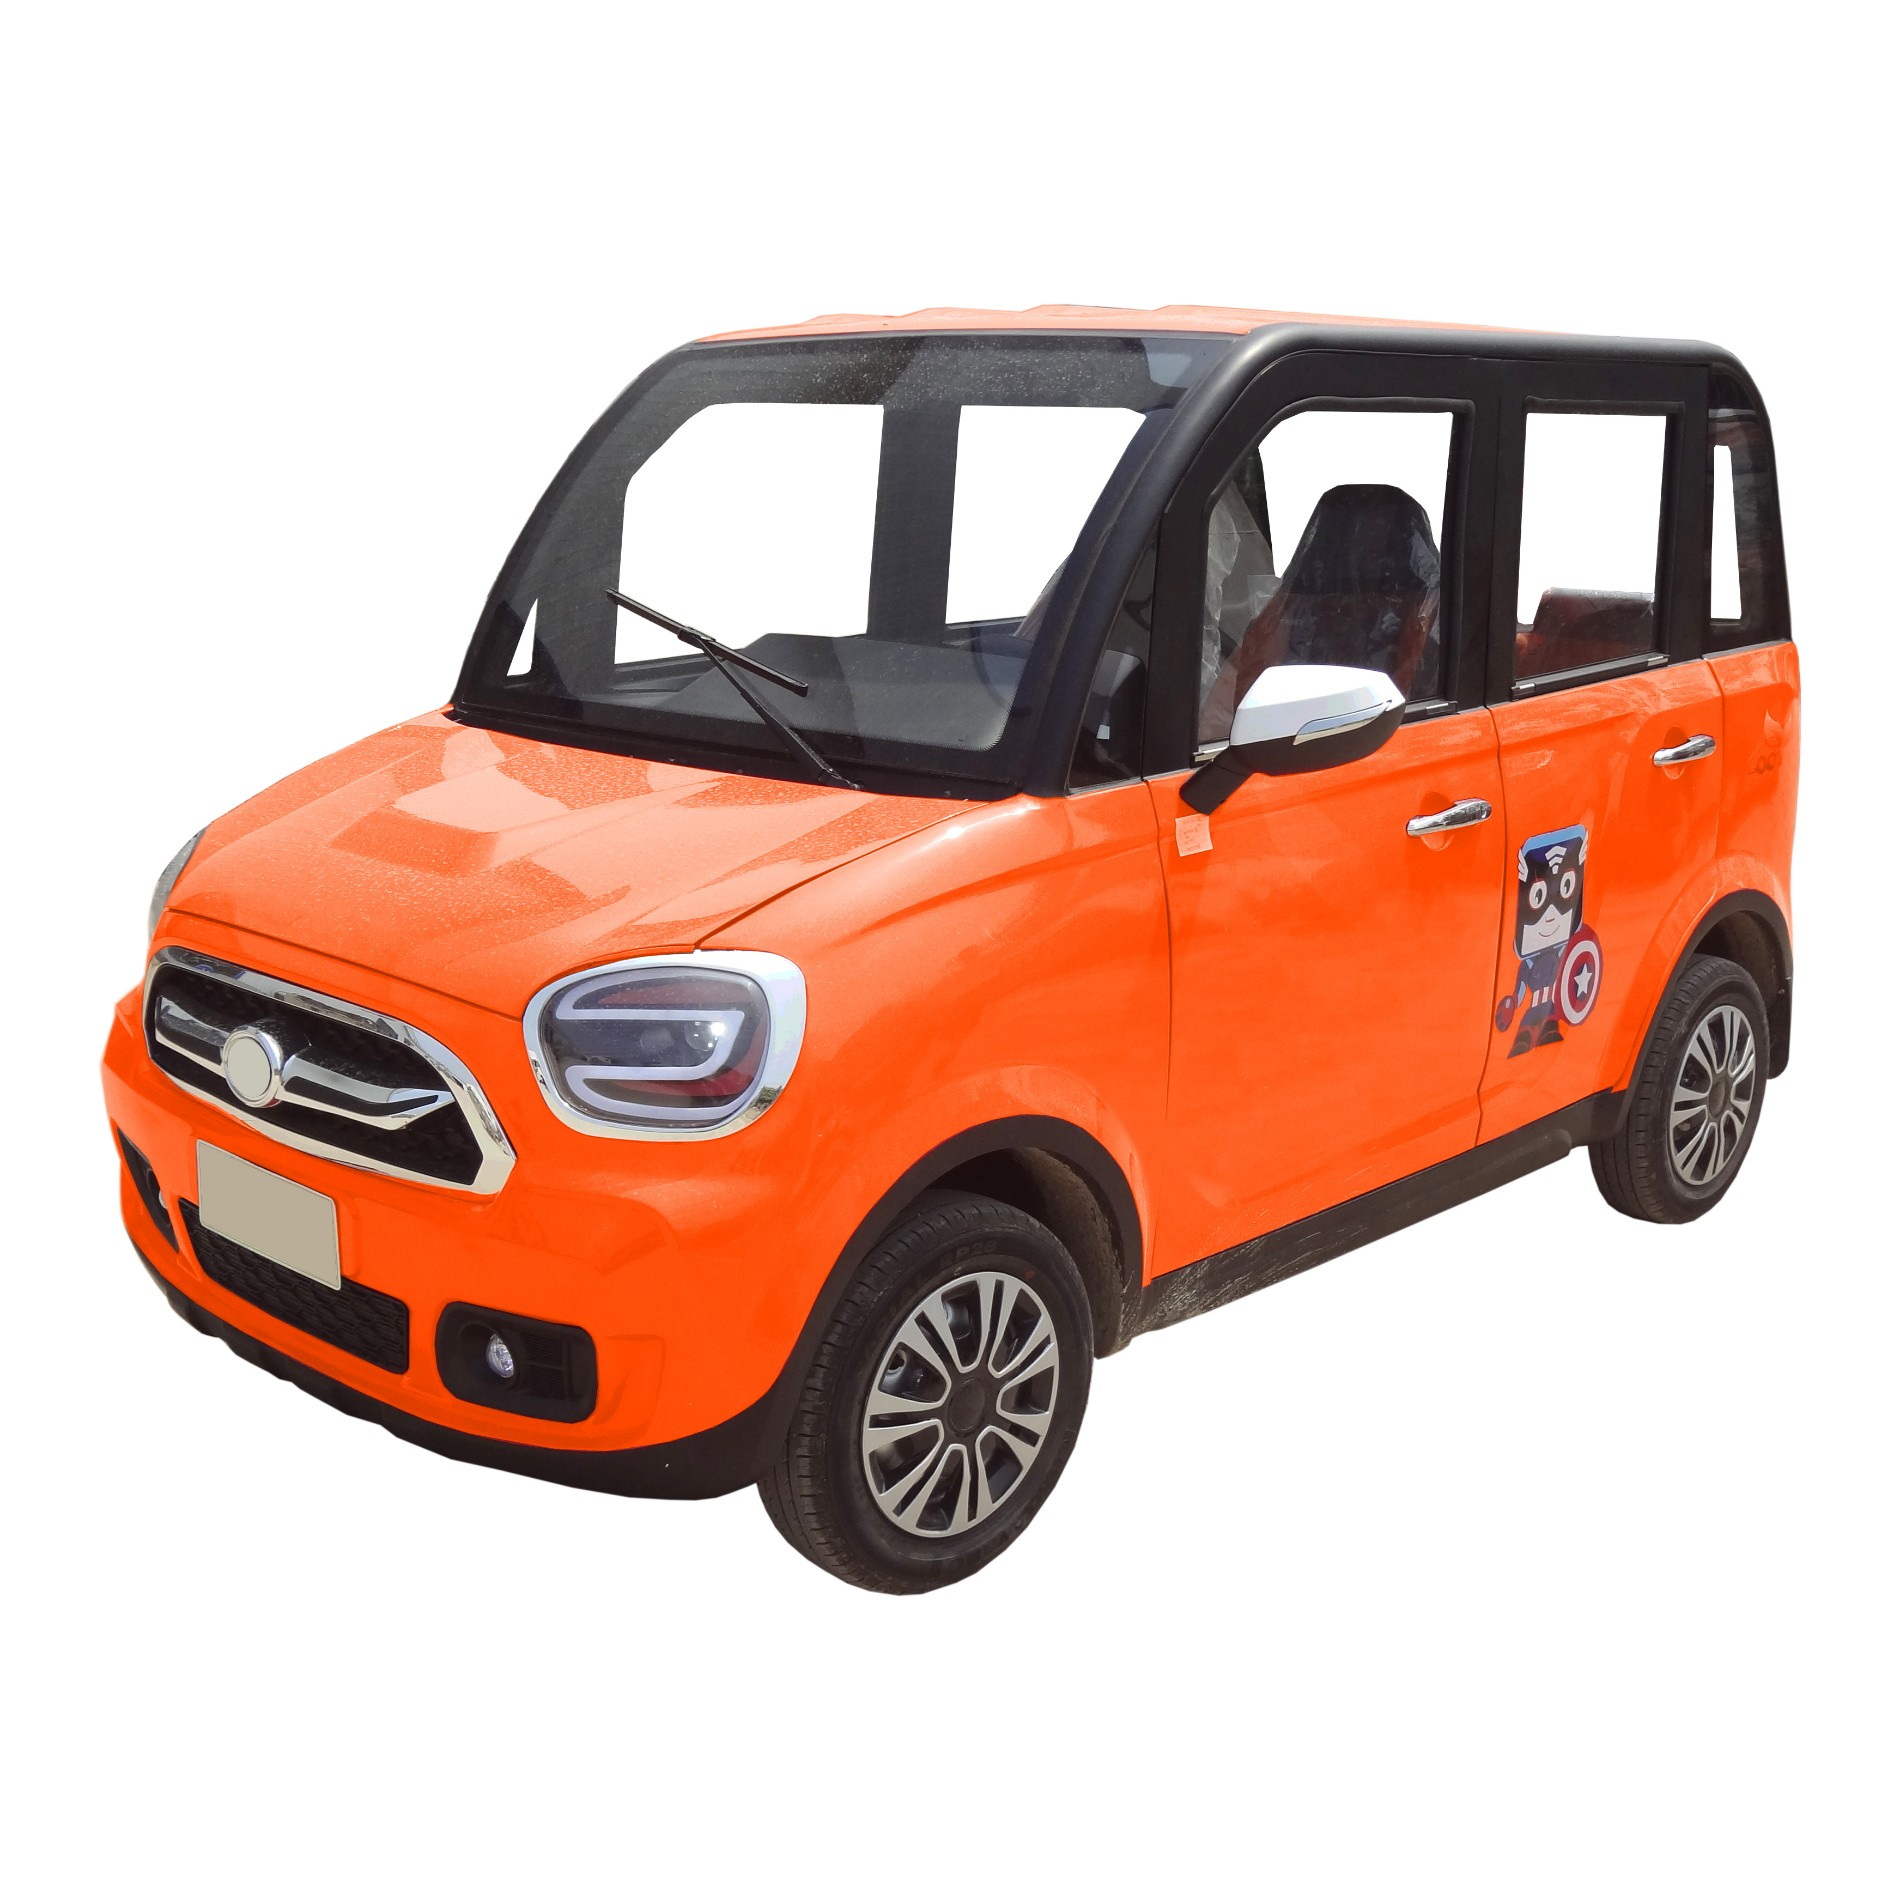 four doors low speed electric vehicle for adult Manufacturers, four doors low speed electric vehicle for adult Factory, Supply four doors low speed electric vehicle for adult